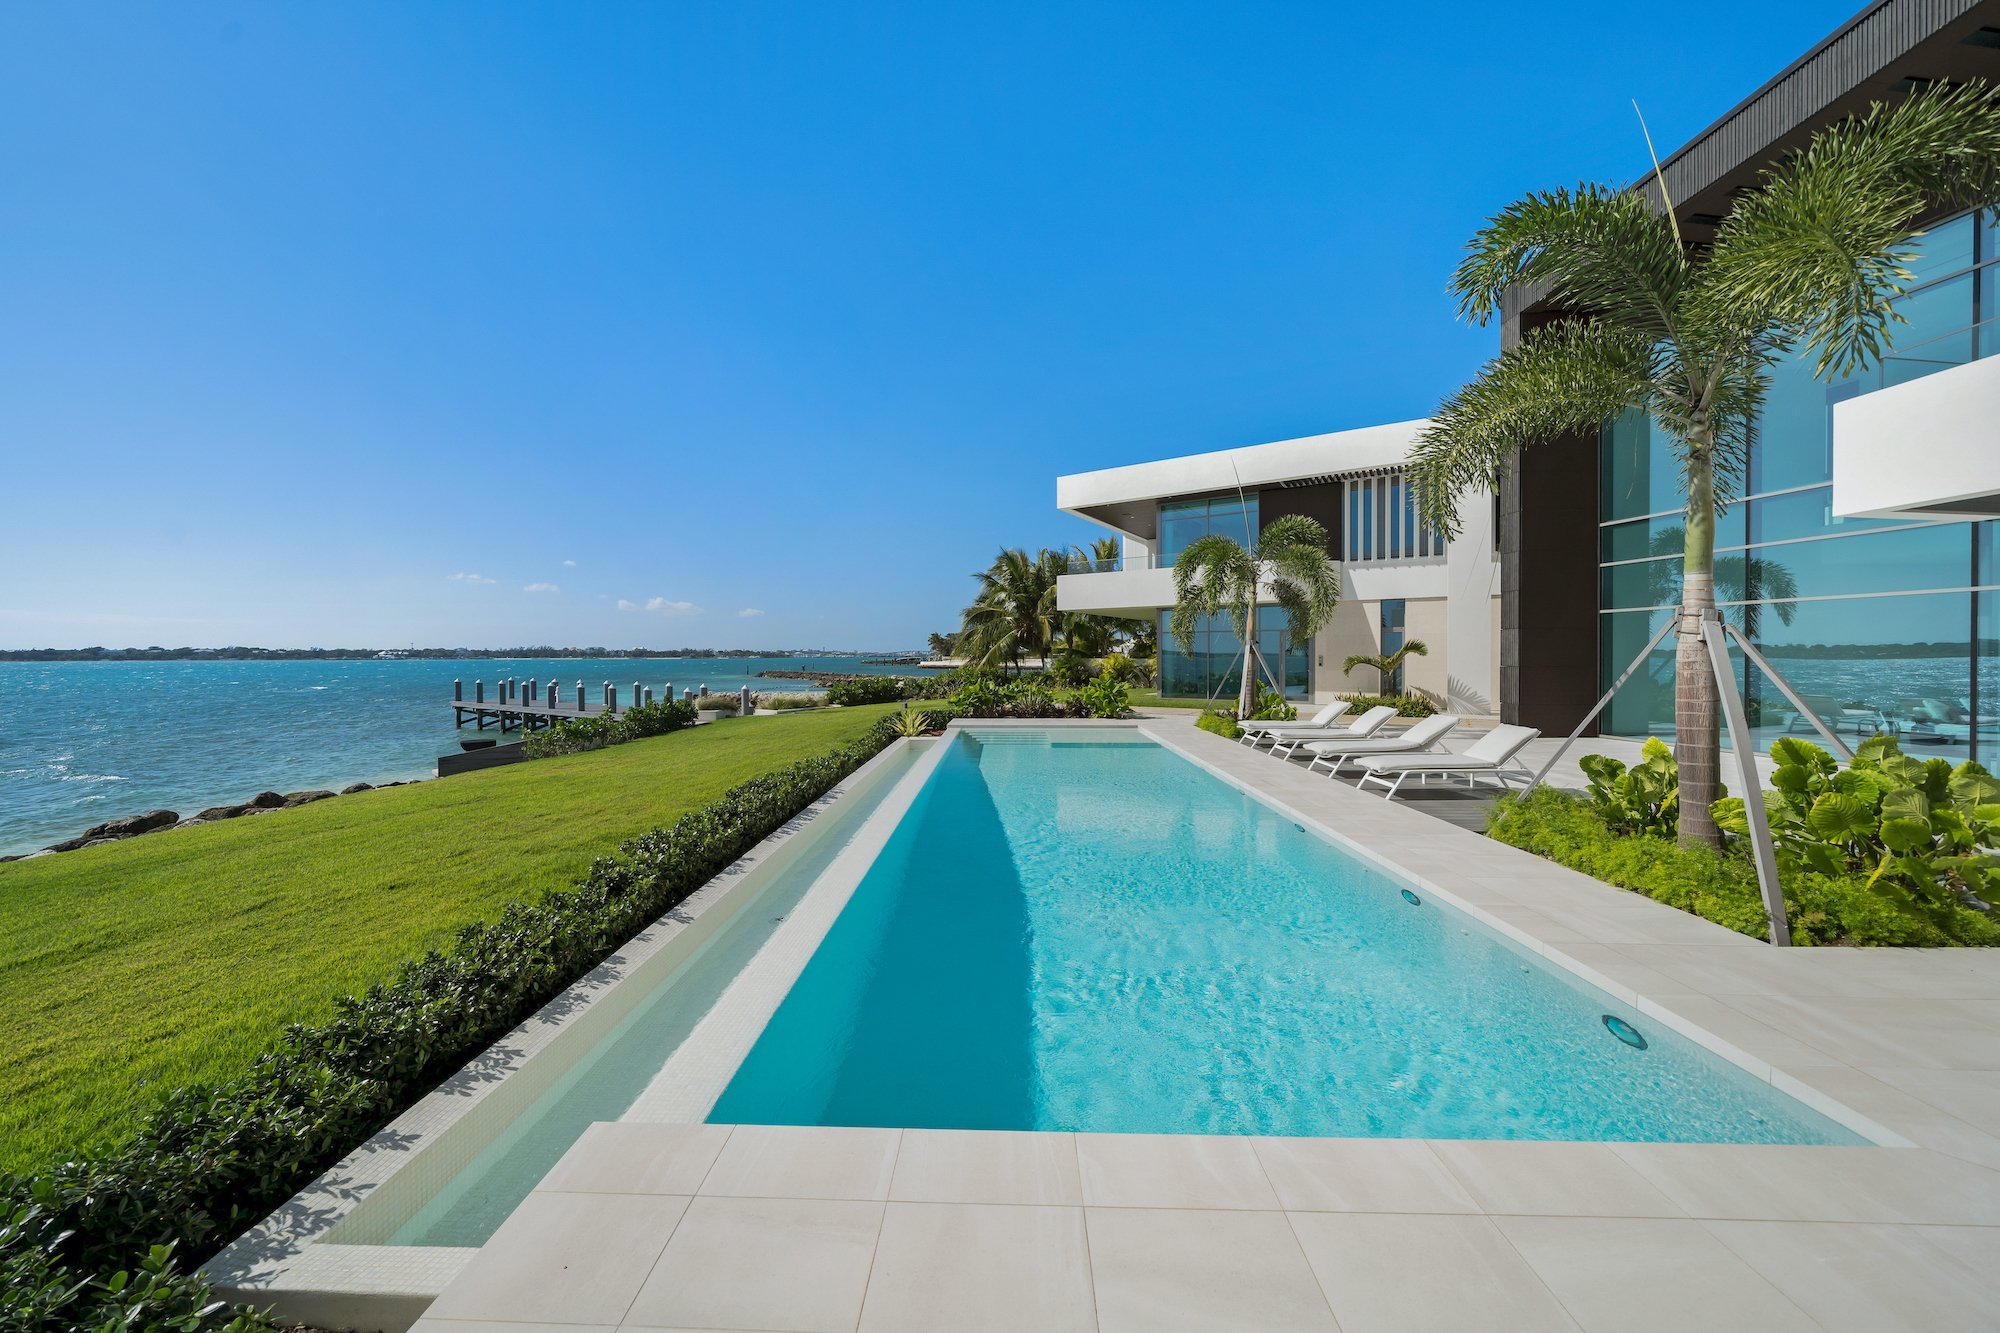 House in New Providence, The Bahamas 1